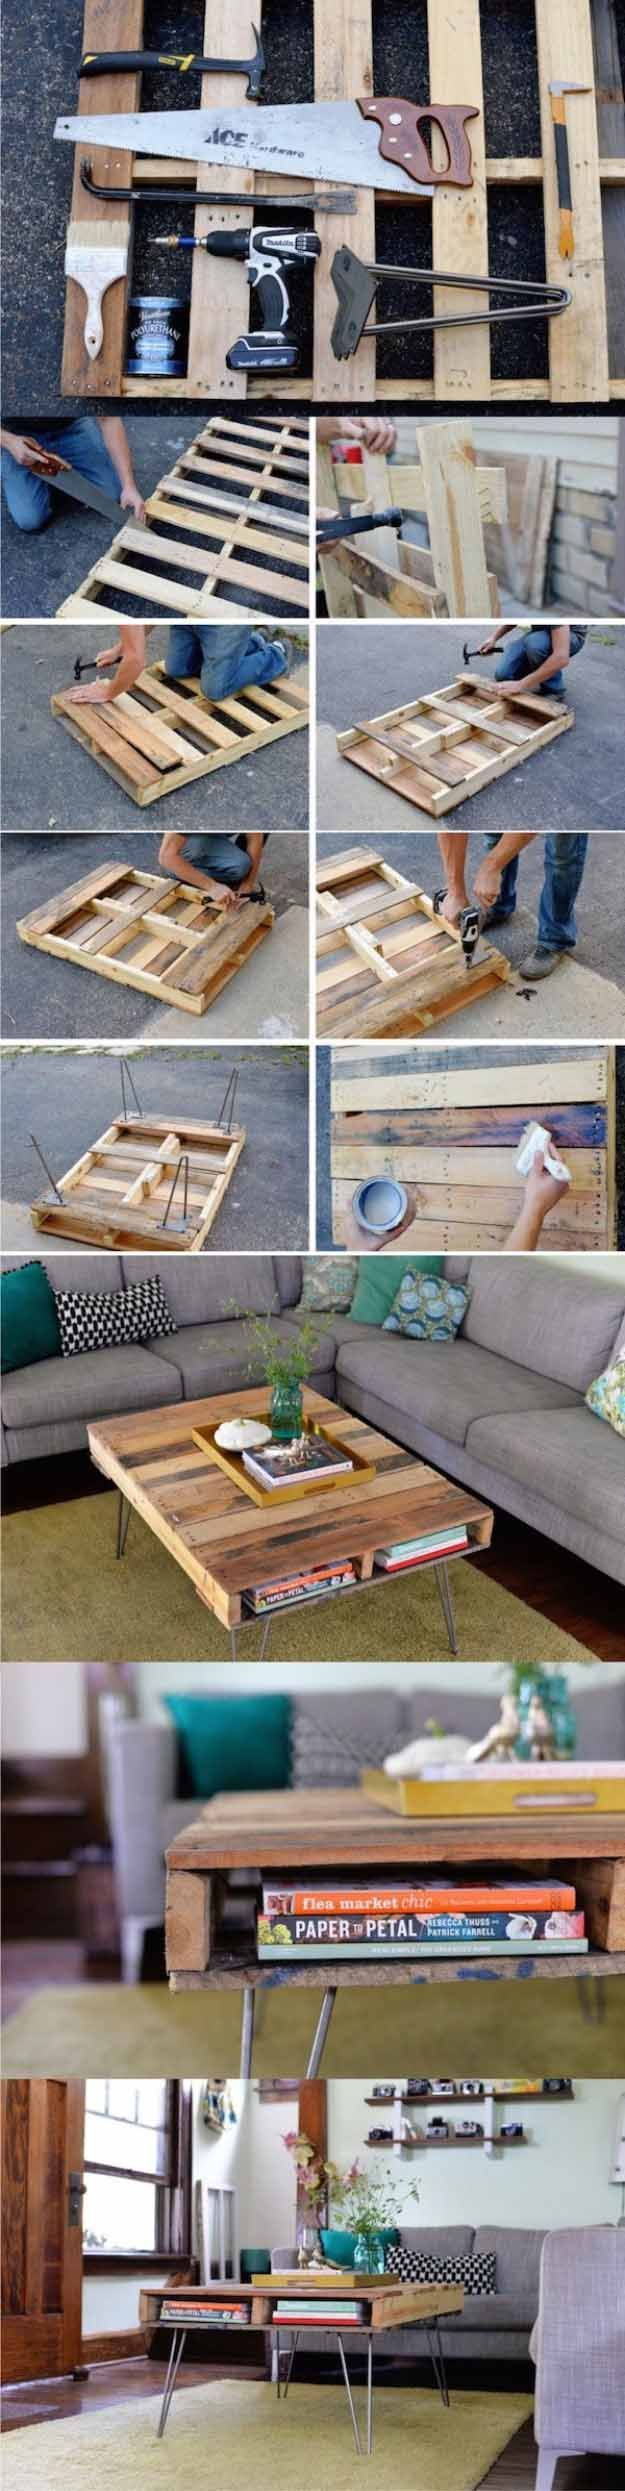 15 Insane DIY Coffee Table Ideas 3